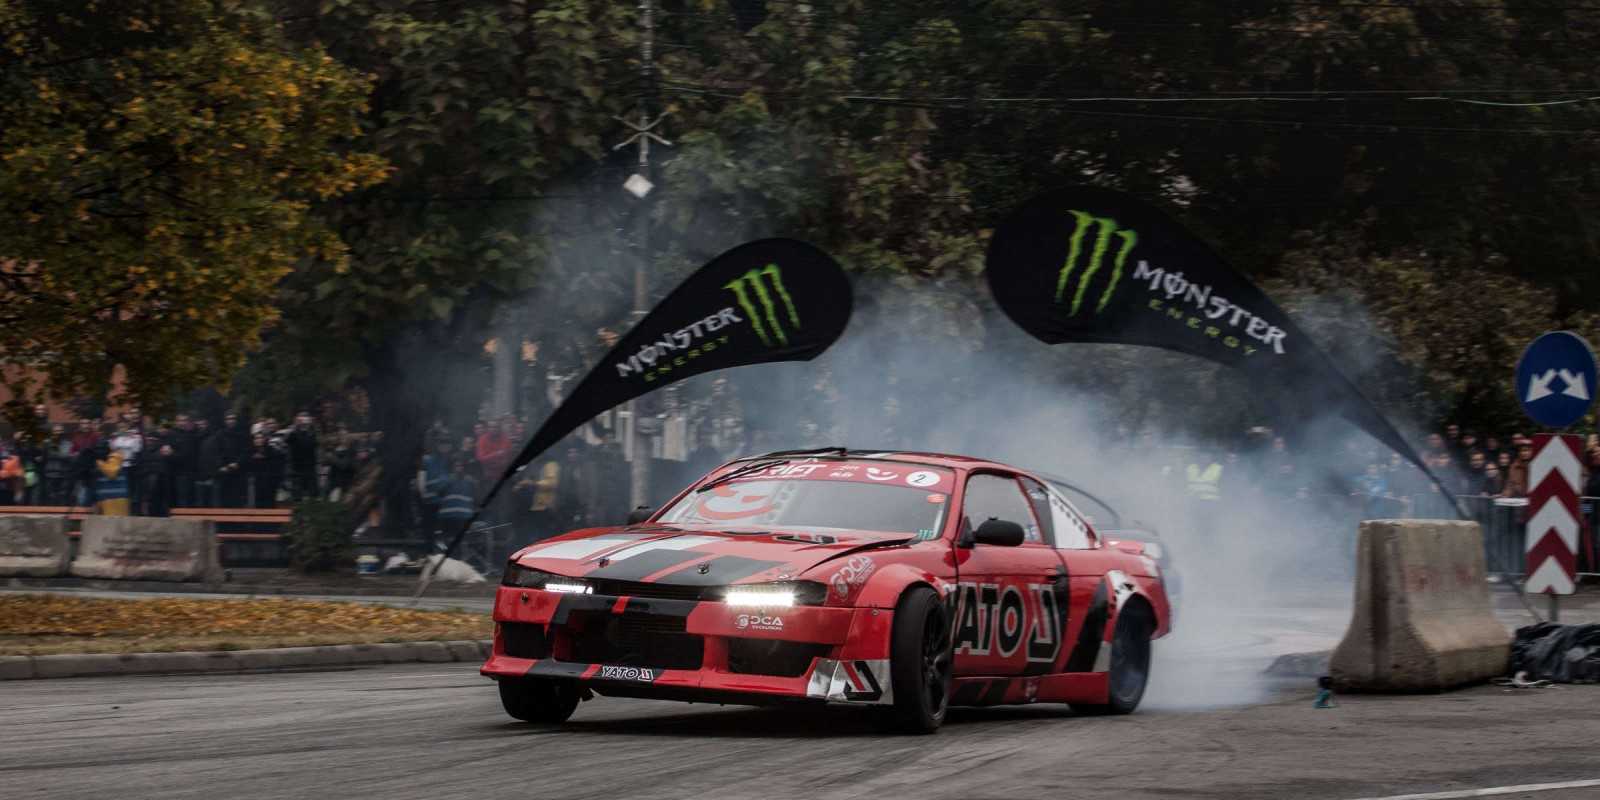 Event imagery taken at the last stage of the Romanian Drift Championship in Baia Mare, Romania.